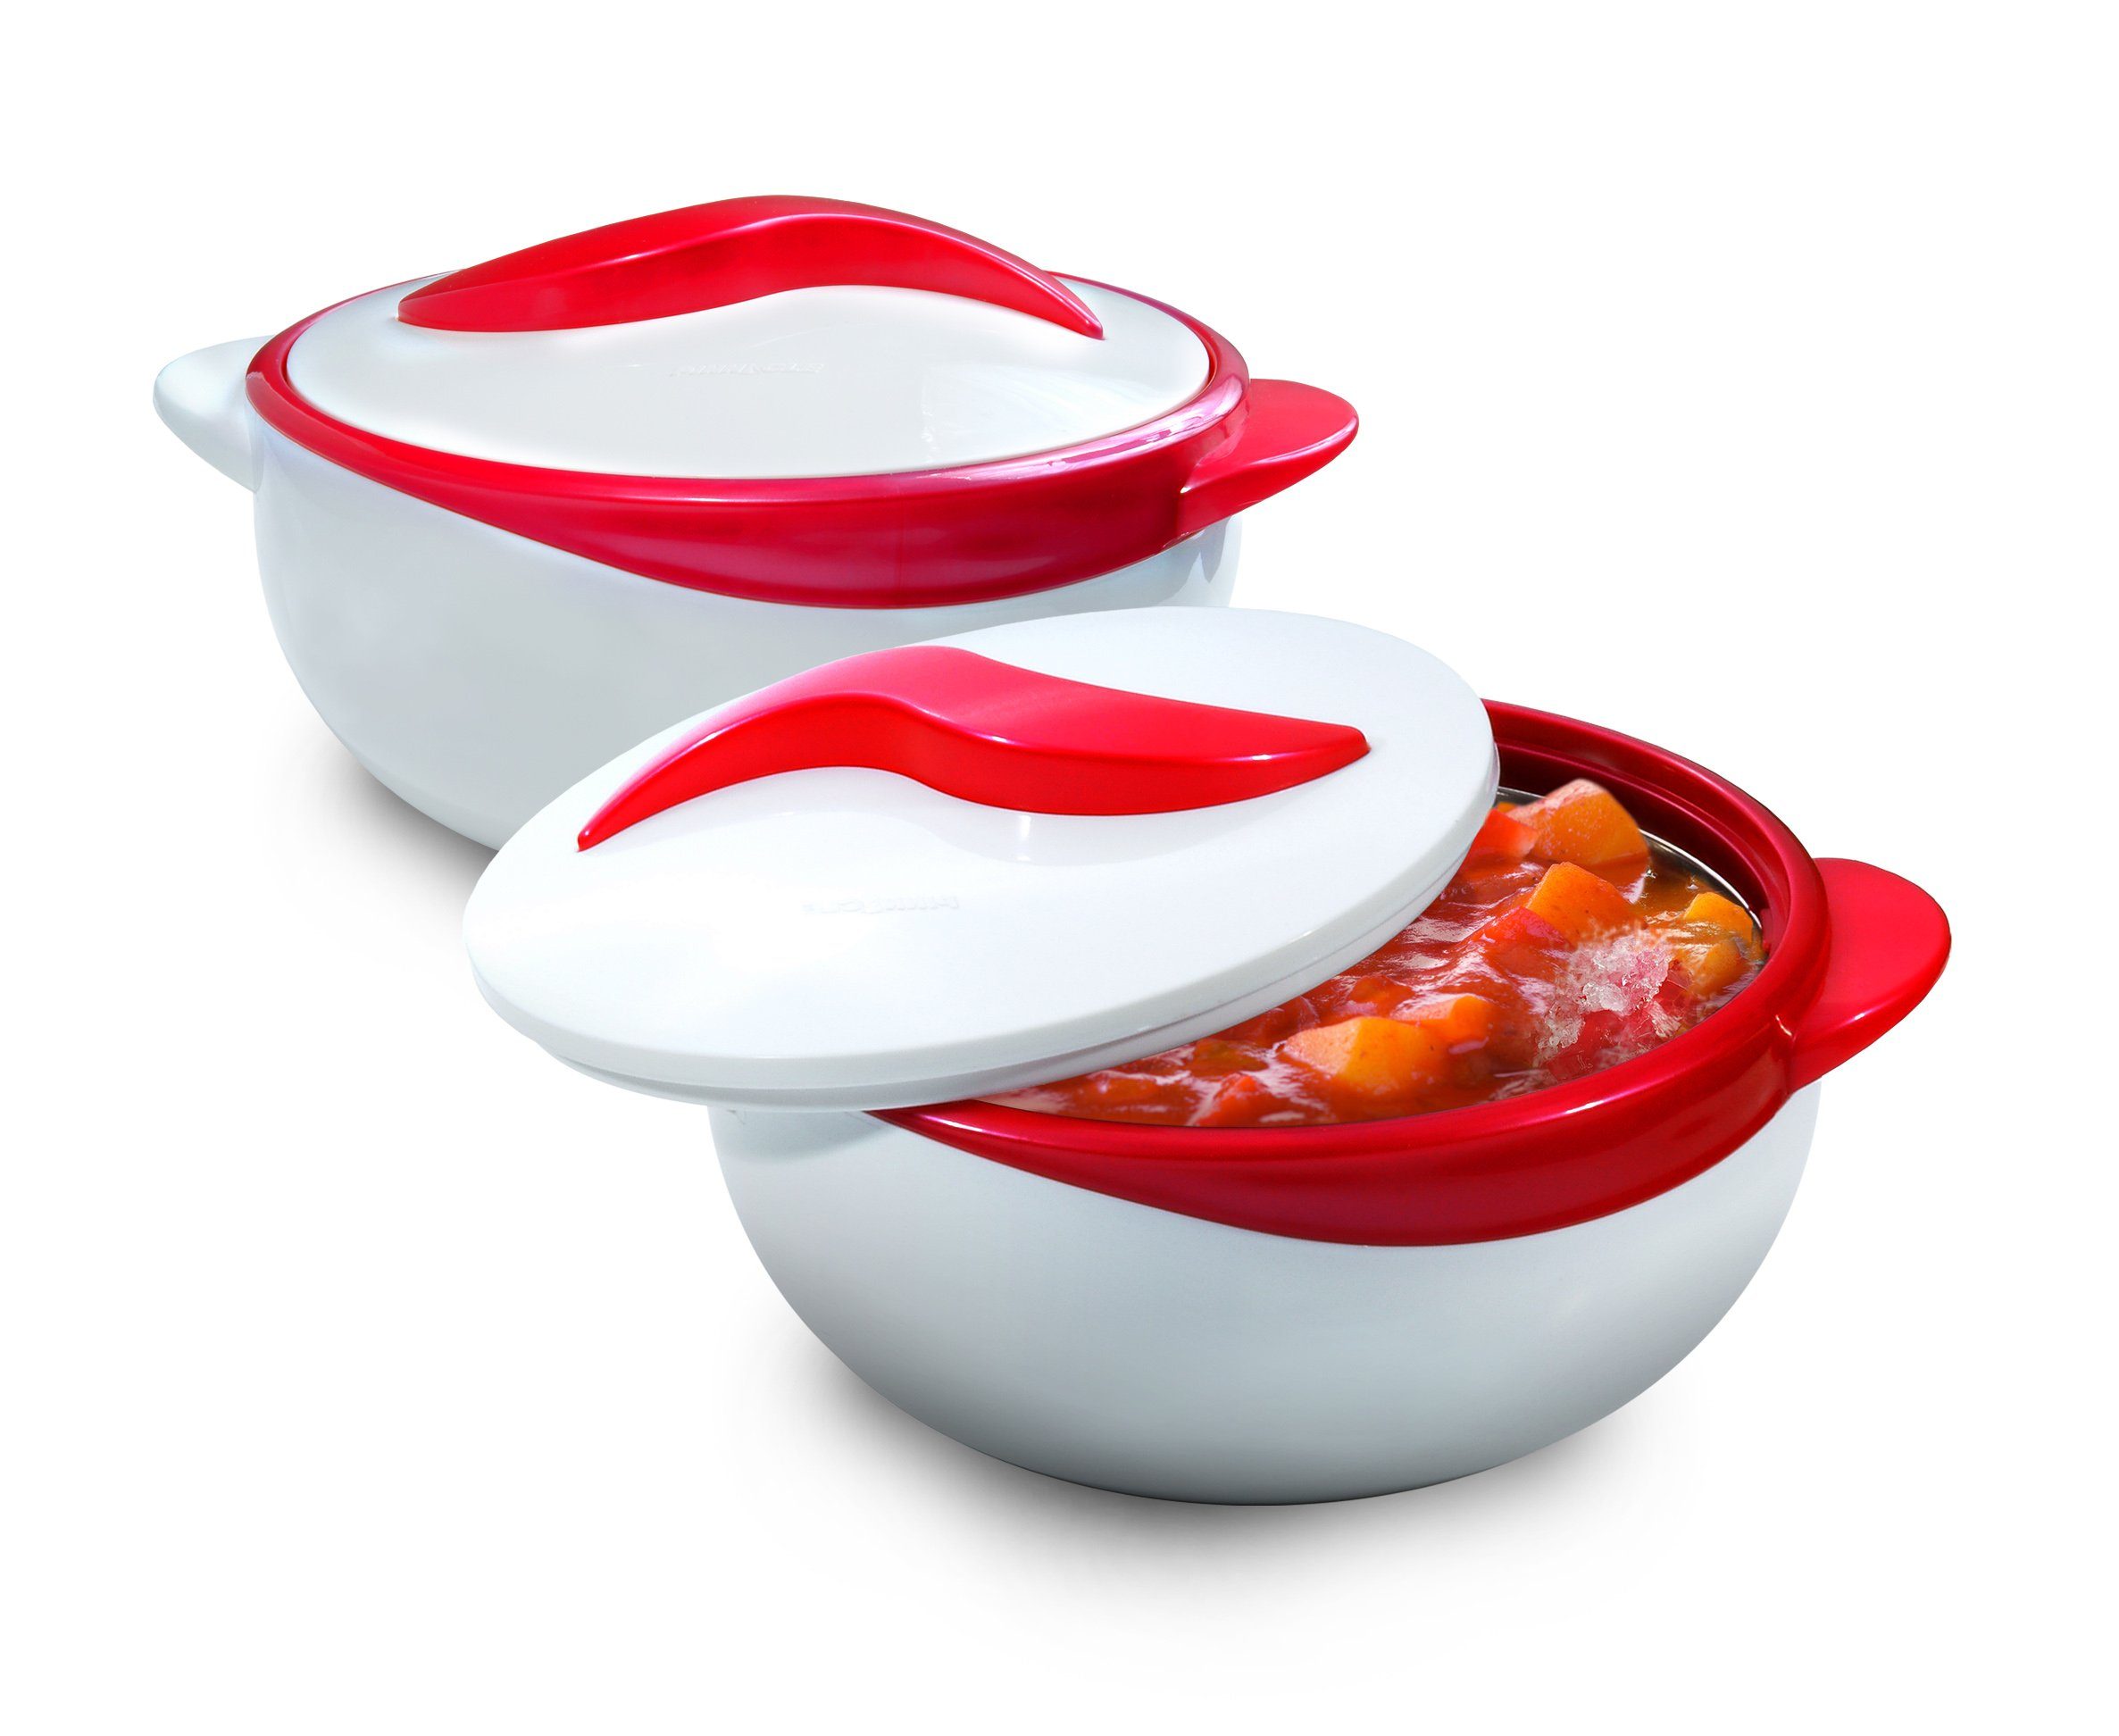 Pinnacle 2 Piece Thermo Dish Hot or Cold Casserole Serving Bowls with Lids